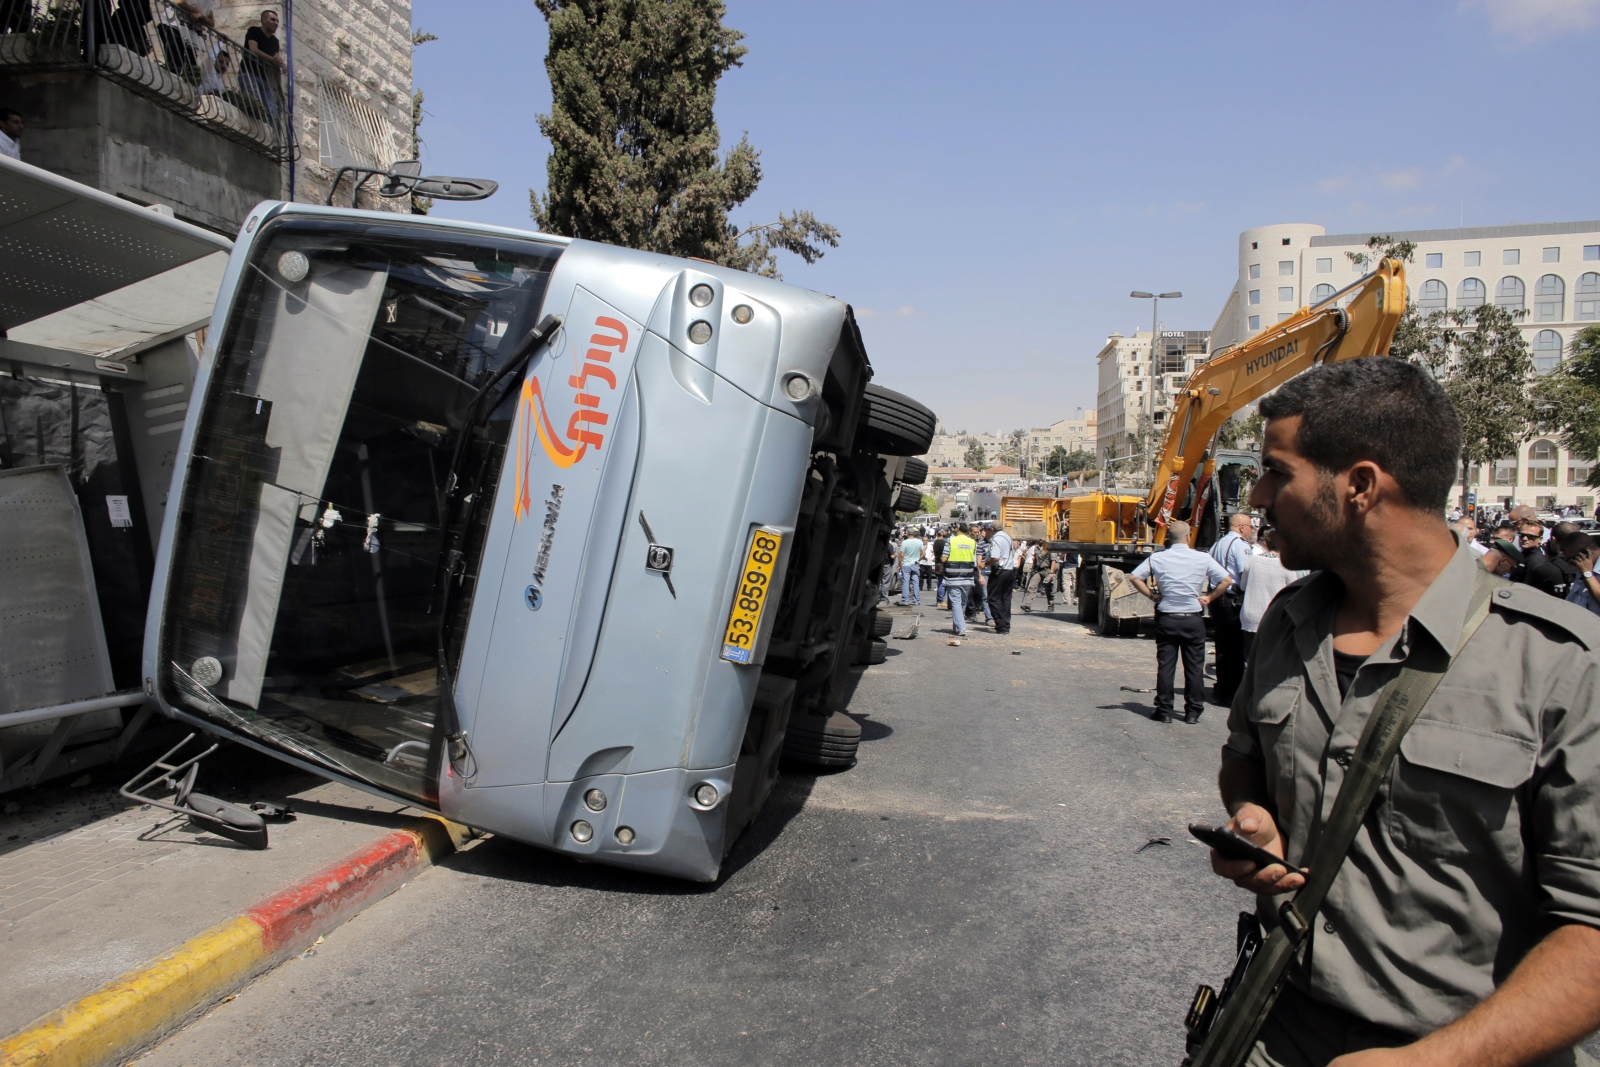 An Israeli border policeman looks at an overturned bus at the scene of a suspected attack in Jerusalem